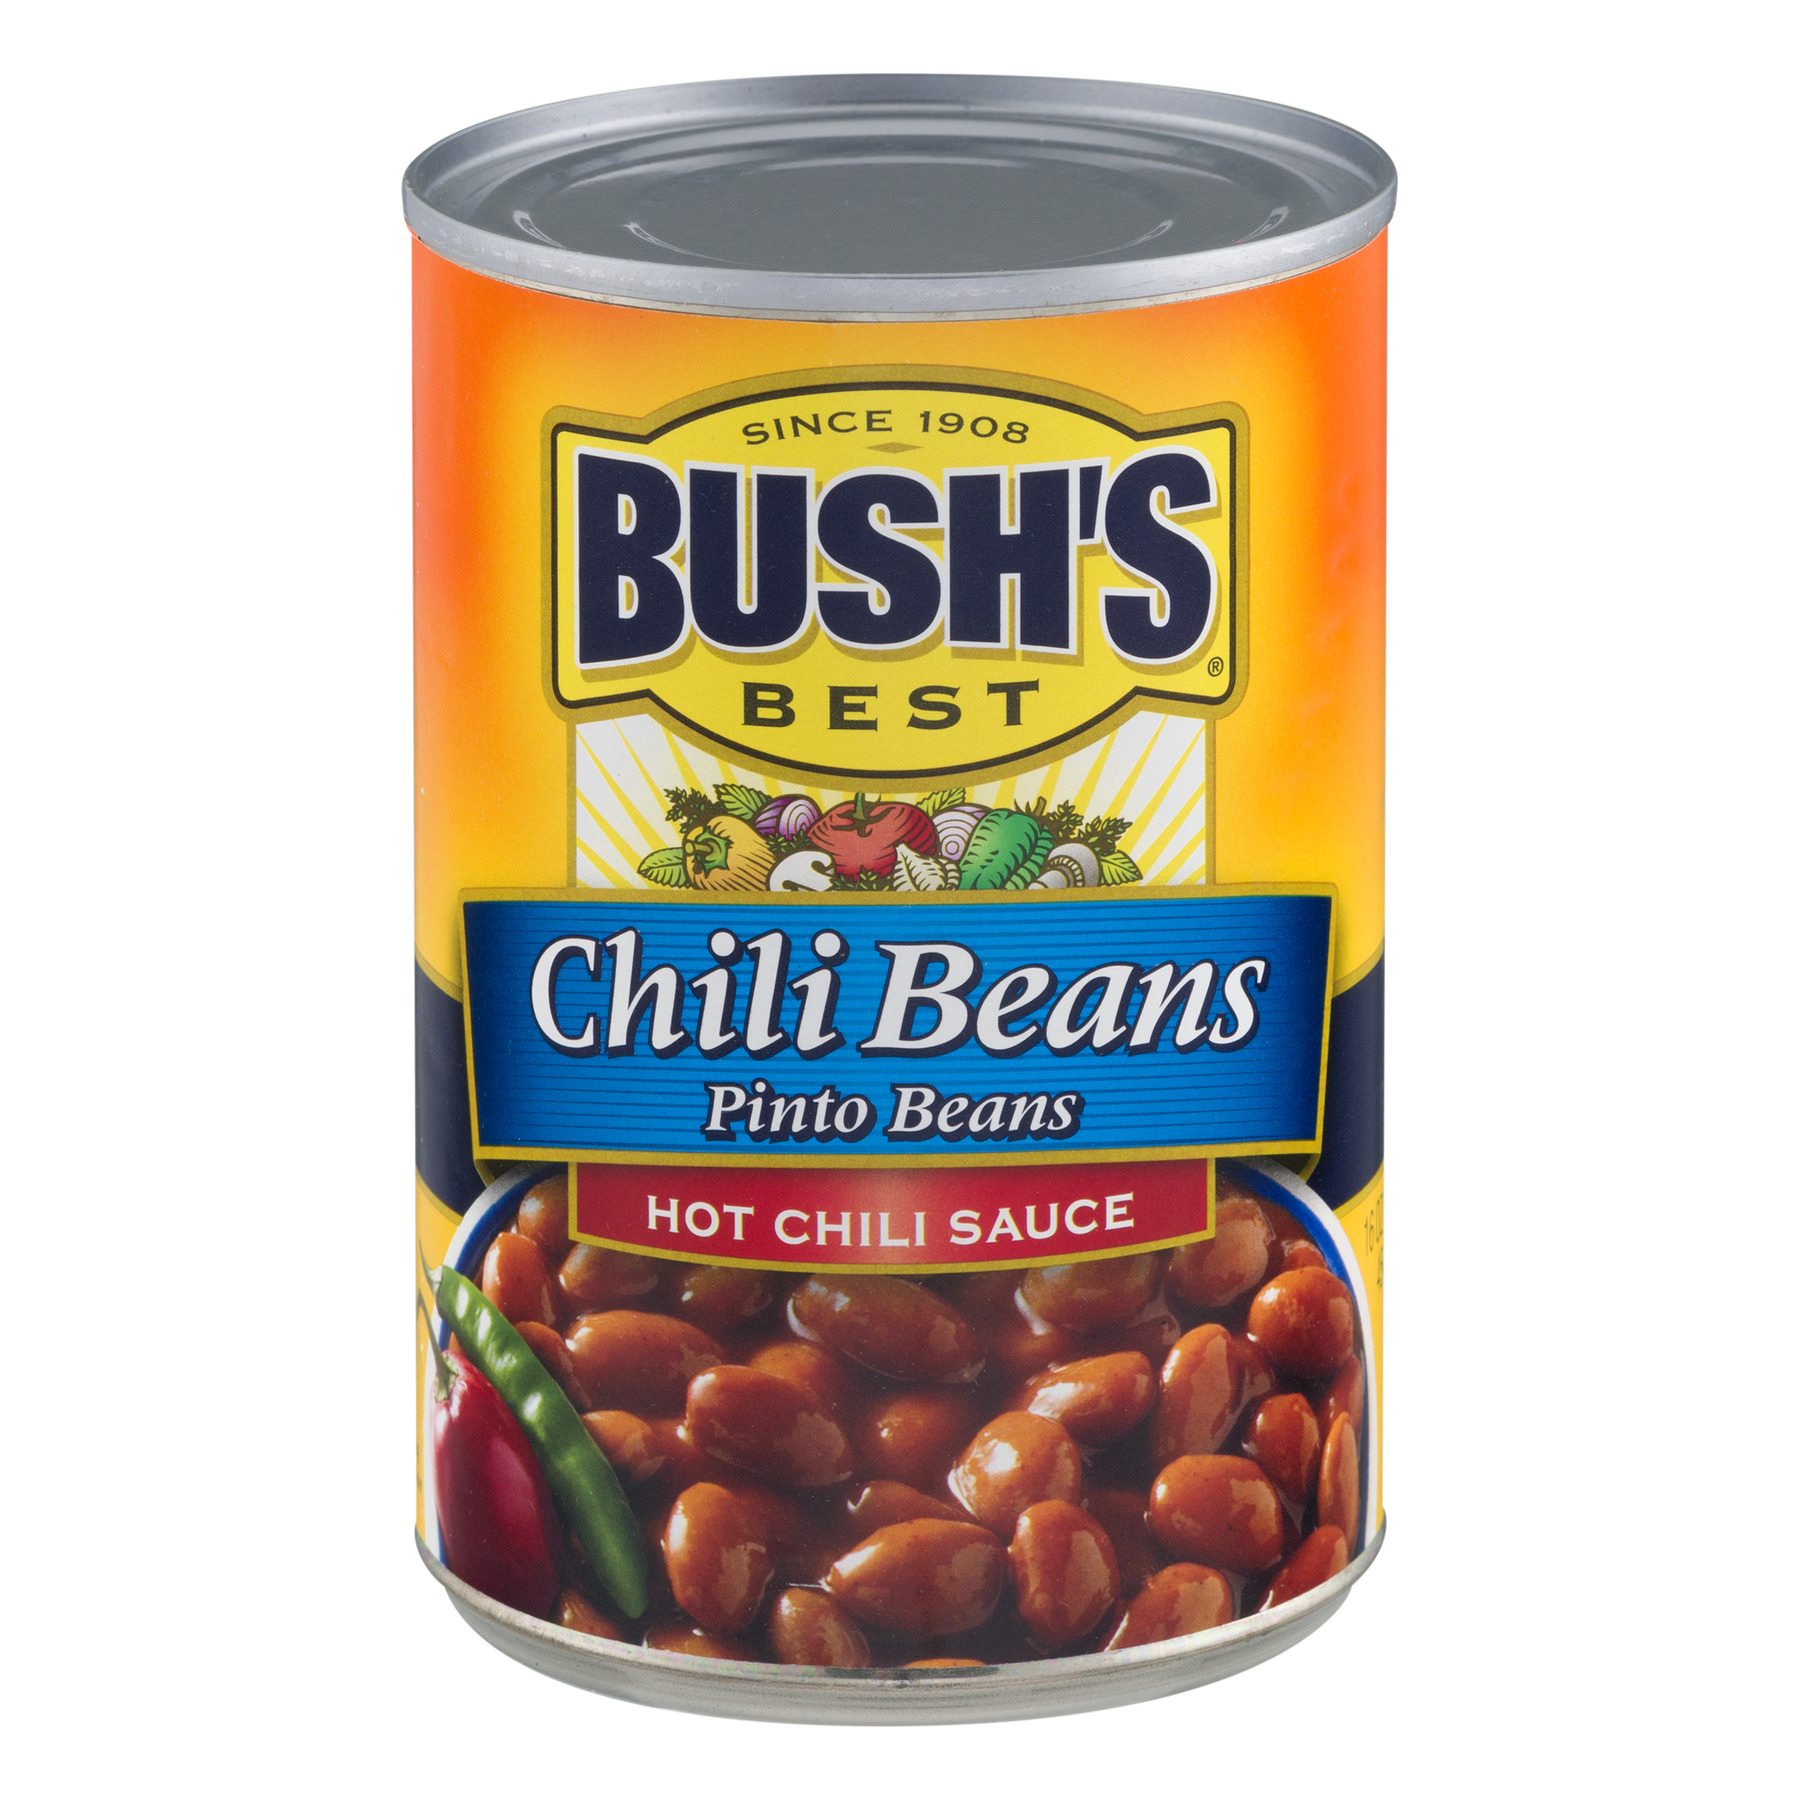 (6 Pack) BUSH'S Pinto Beans in a Hot Chili Sauce, 16 oz.